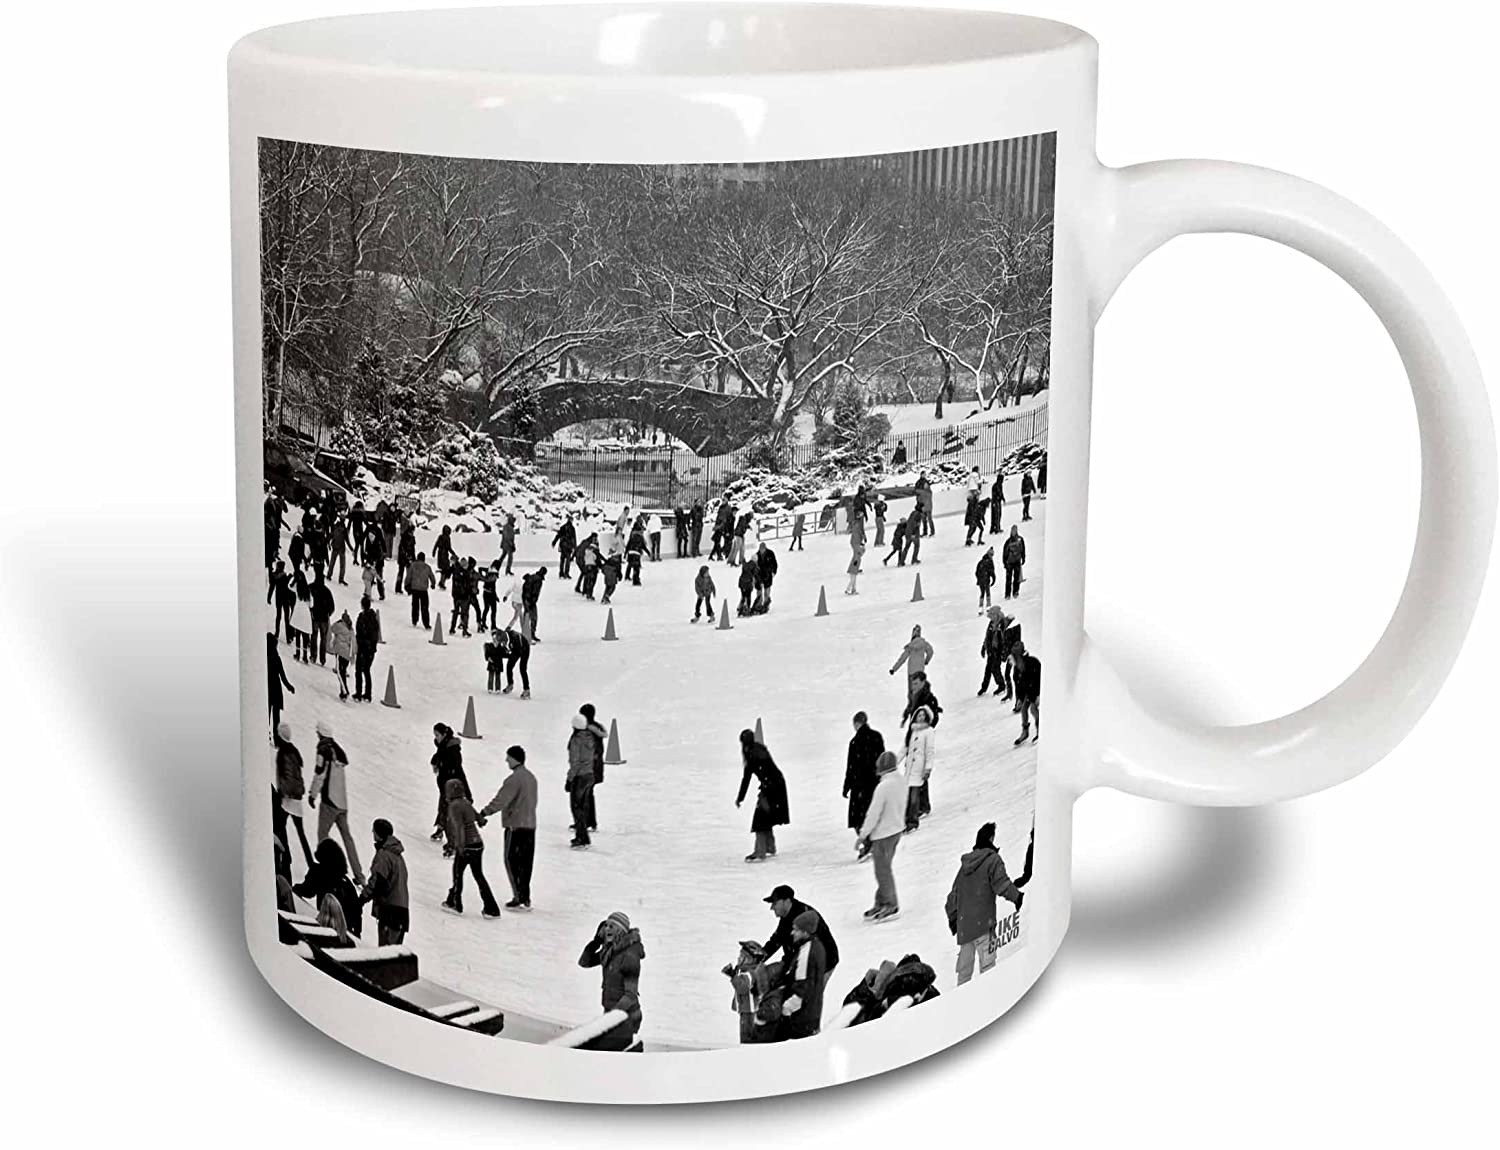 Amazon Com 3drose Snow Blizzard In Central Park Manhattan New York City Ice Skate Ring Ceramic Mug 11 Oz Multicolored Kitchen Dining